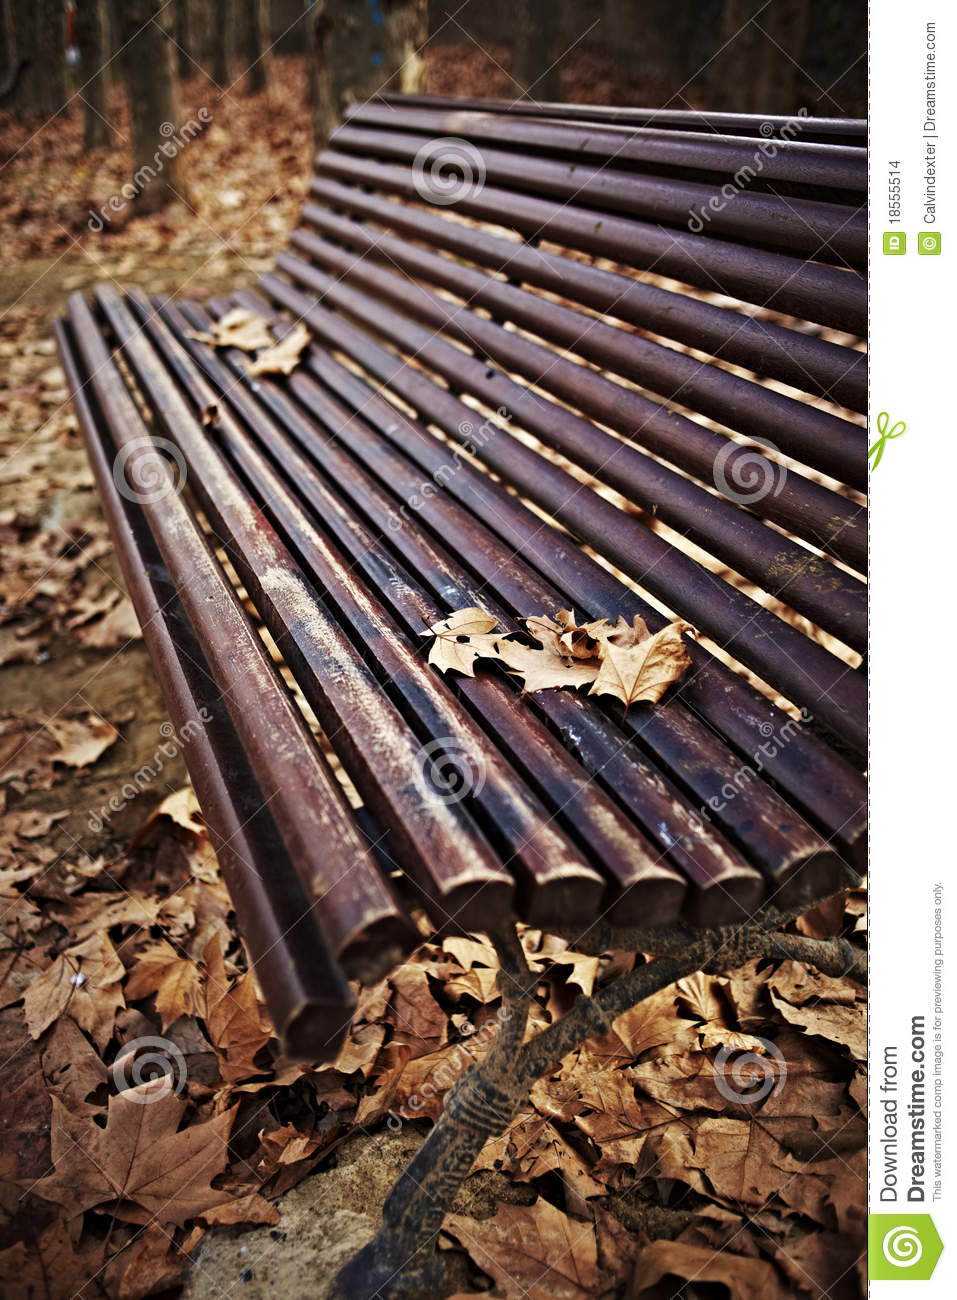 autumn leaves on bench - photo #24